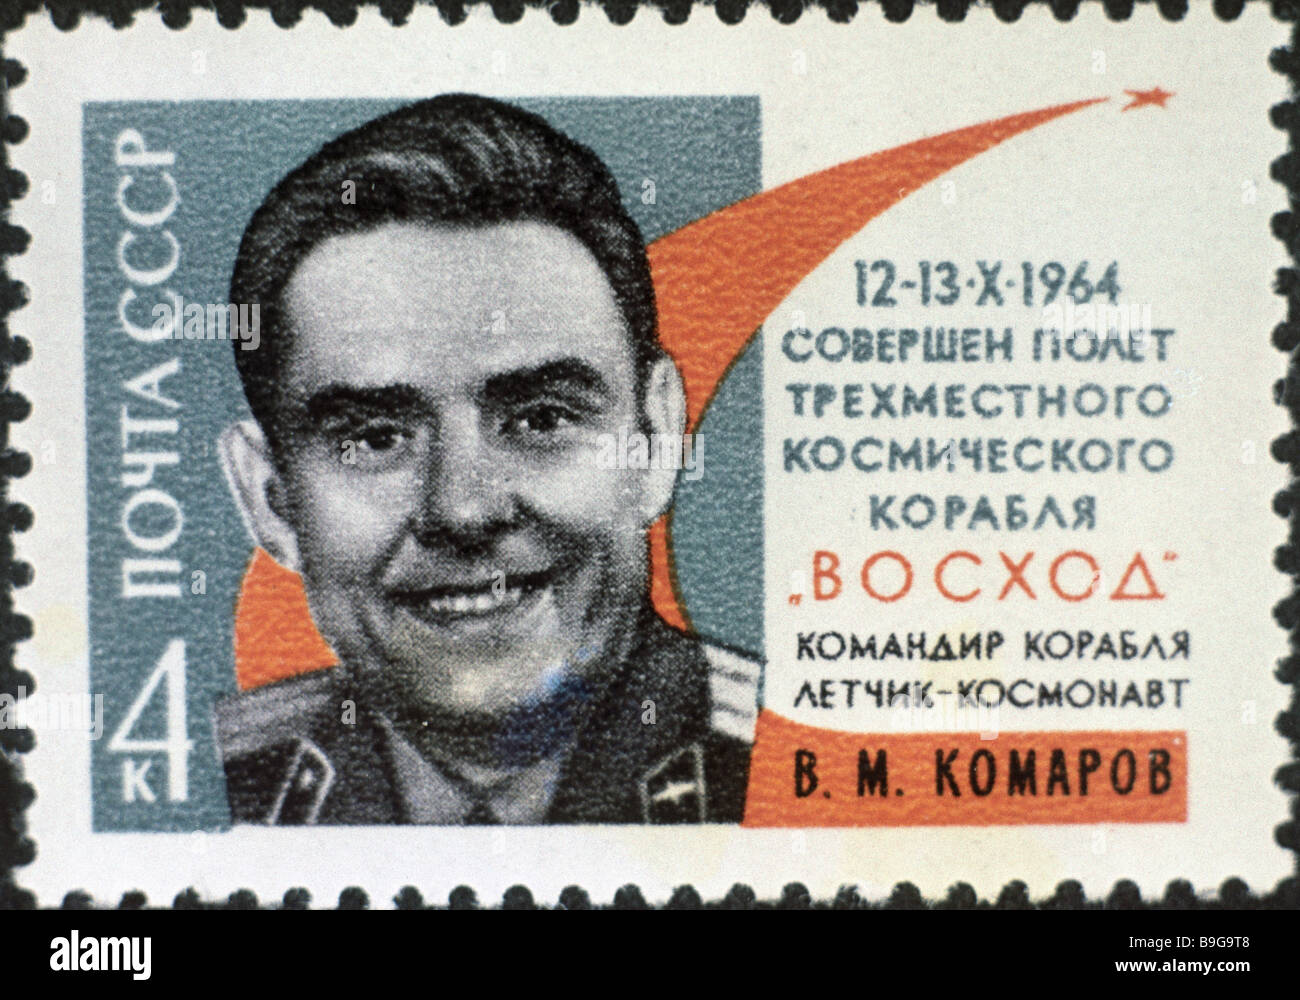 A postal stamp dedicated to cosmonaut Vladimir Komarov s flight in a crew of three Voskhod spacecraft October 12 - Stock Image